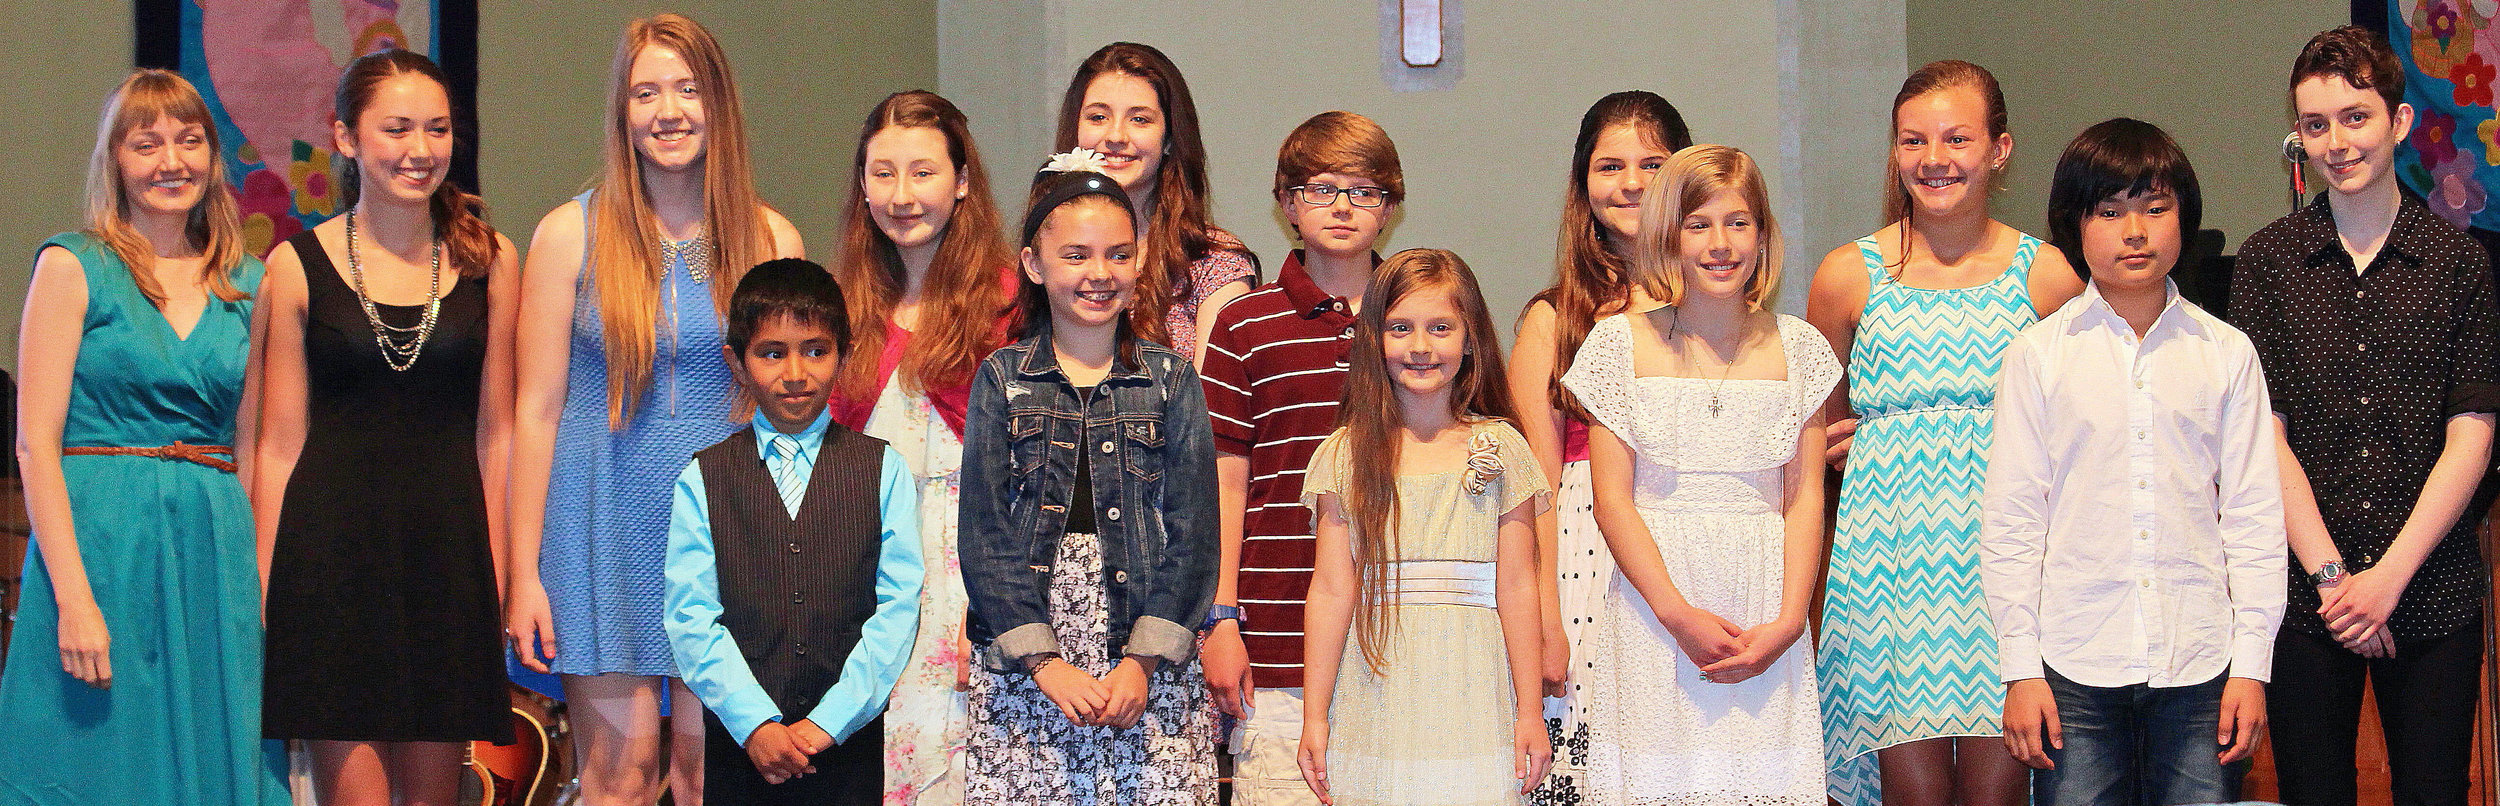 Recital Group pic_banner_crop.jpg